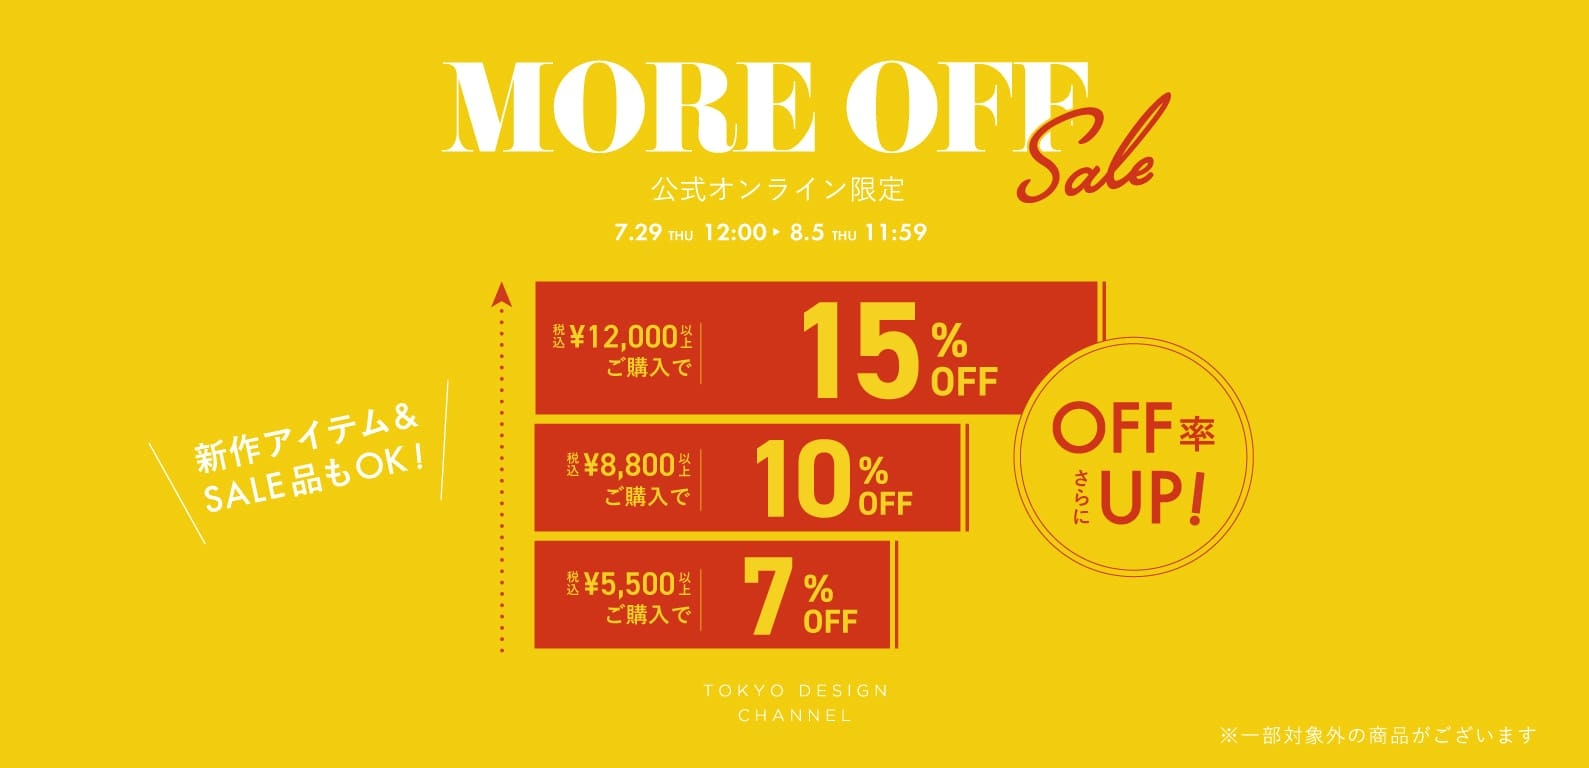 TDC | MORE OFF SALE